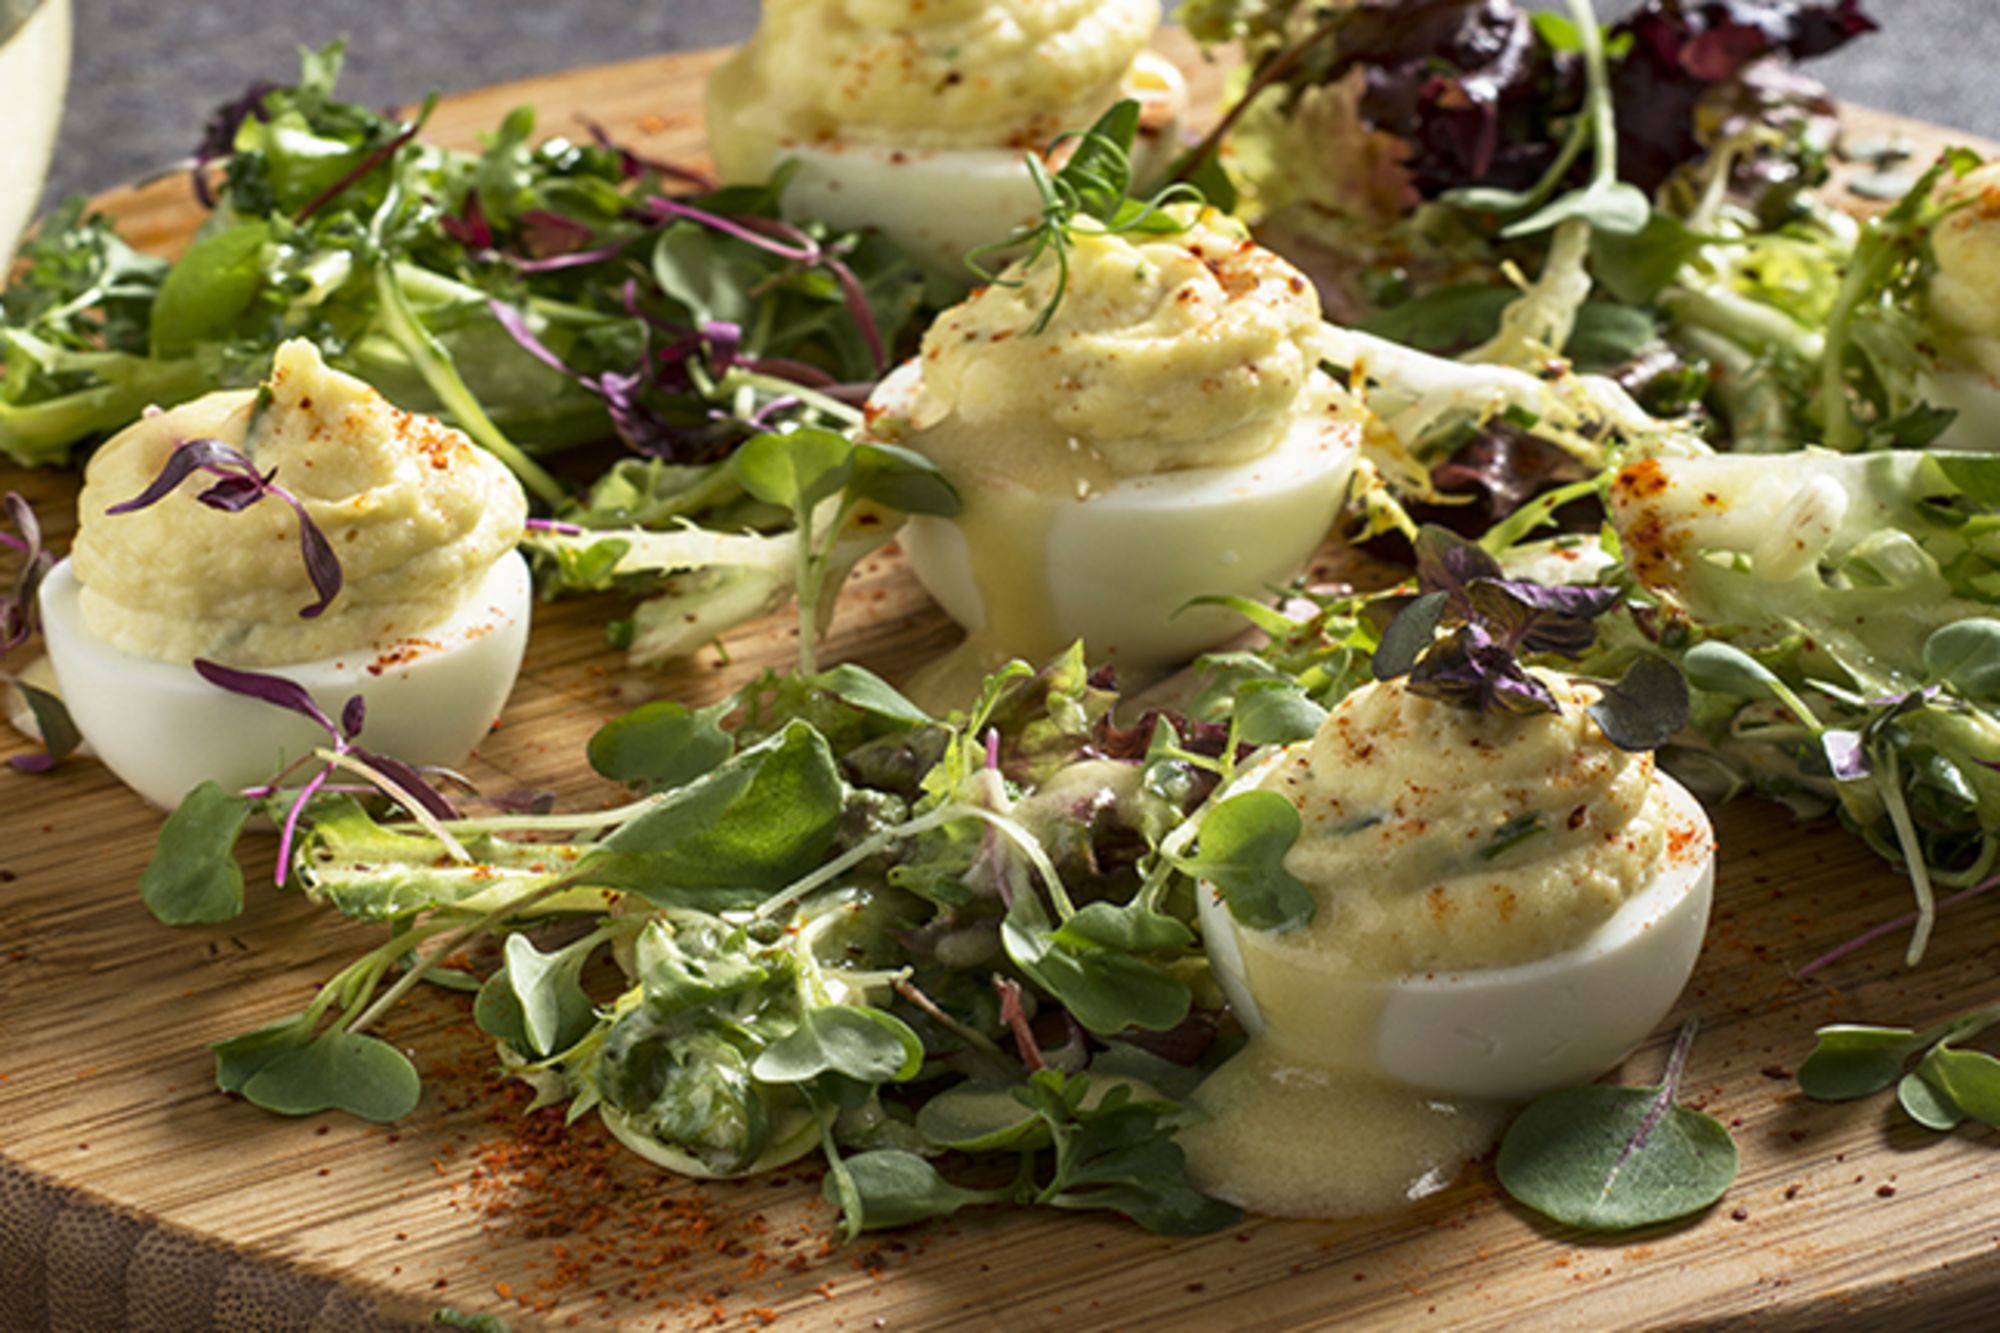 Deviled Eggs Platter with Green Sprout Garnish